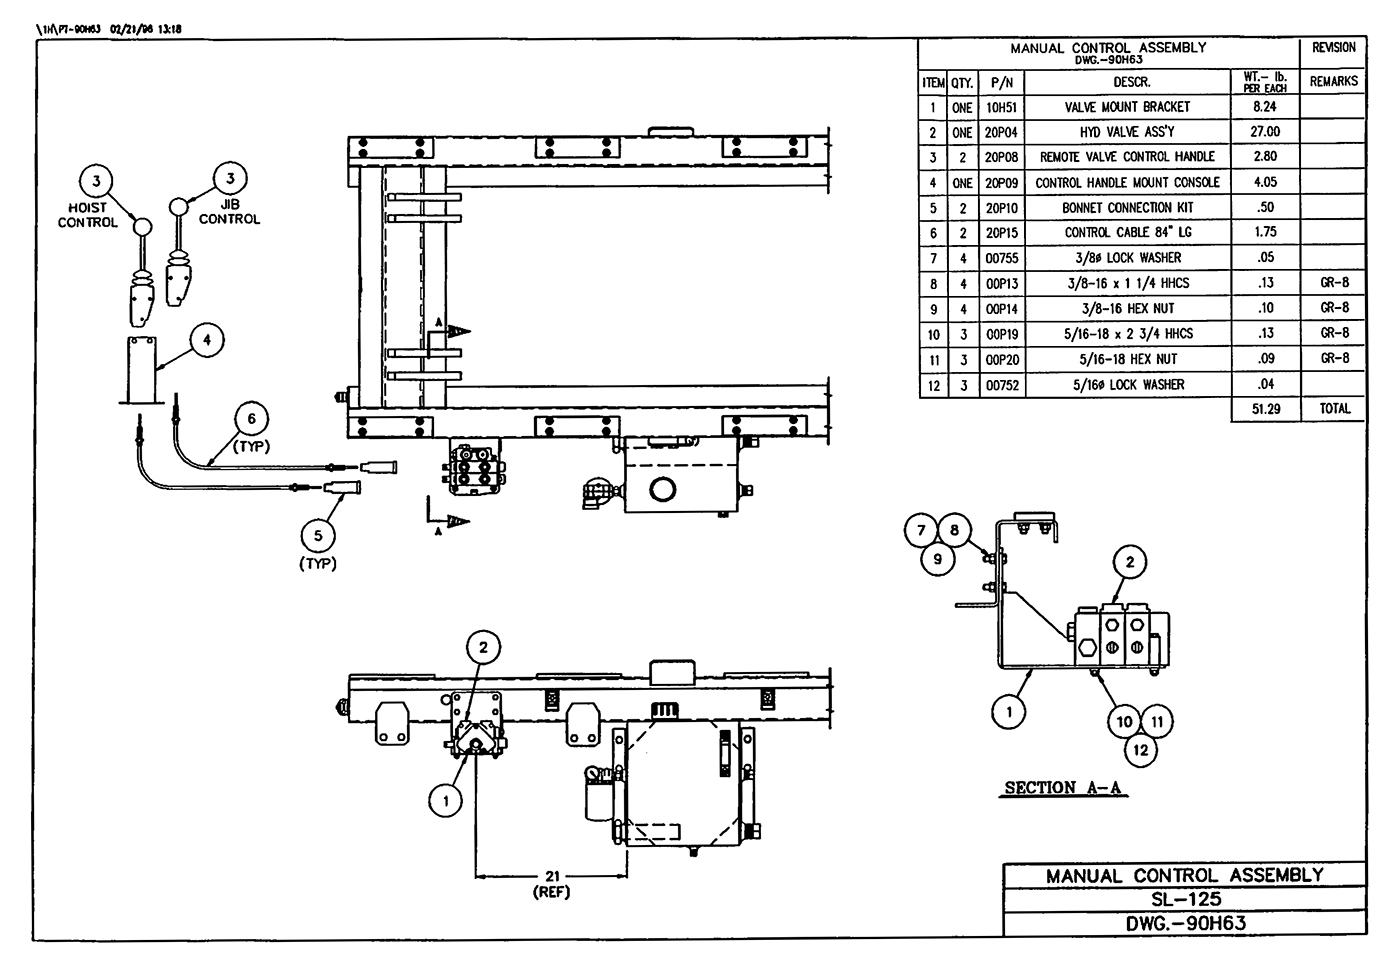 Sl125 Wiring Diagram Detailed Diagrams Cb125 Iteparts Com Intercon Truck Equipment Online Store A Non Computer 700r4